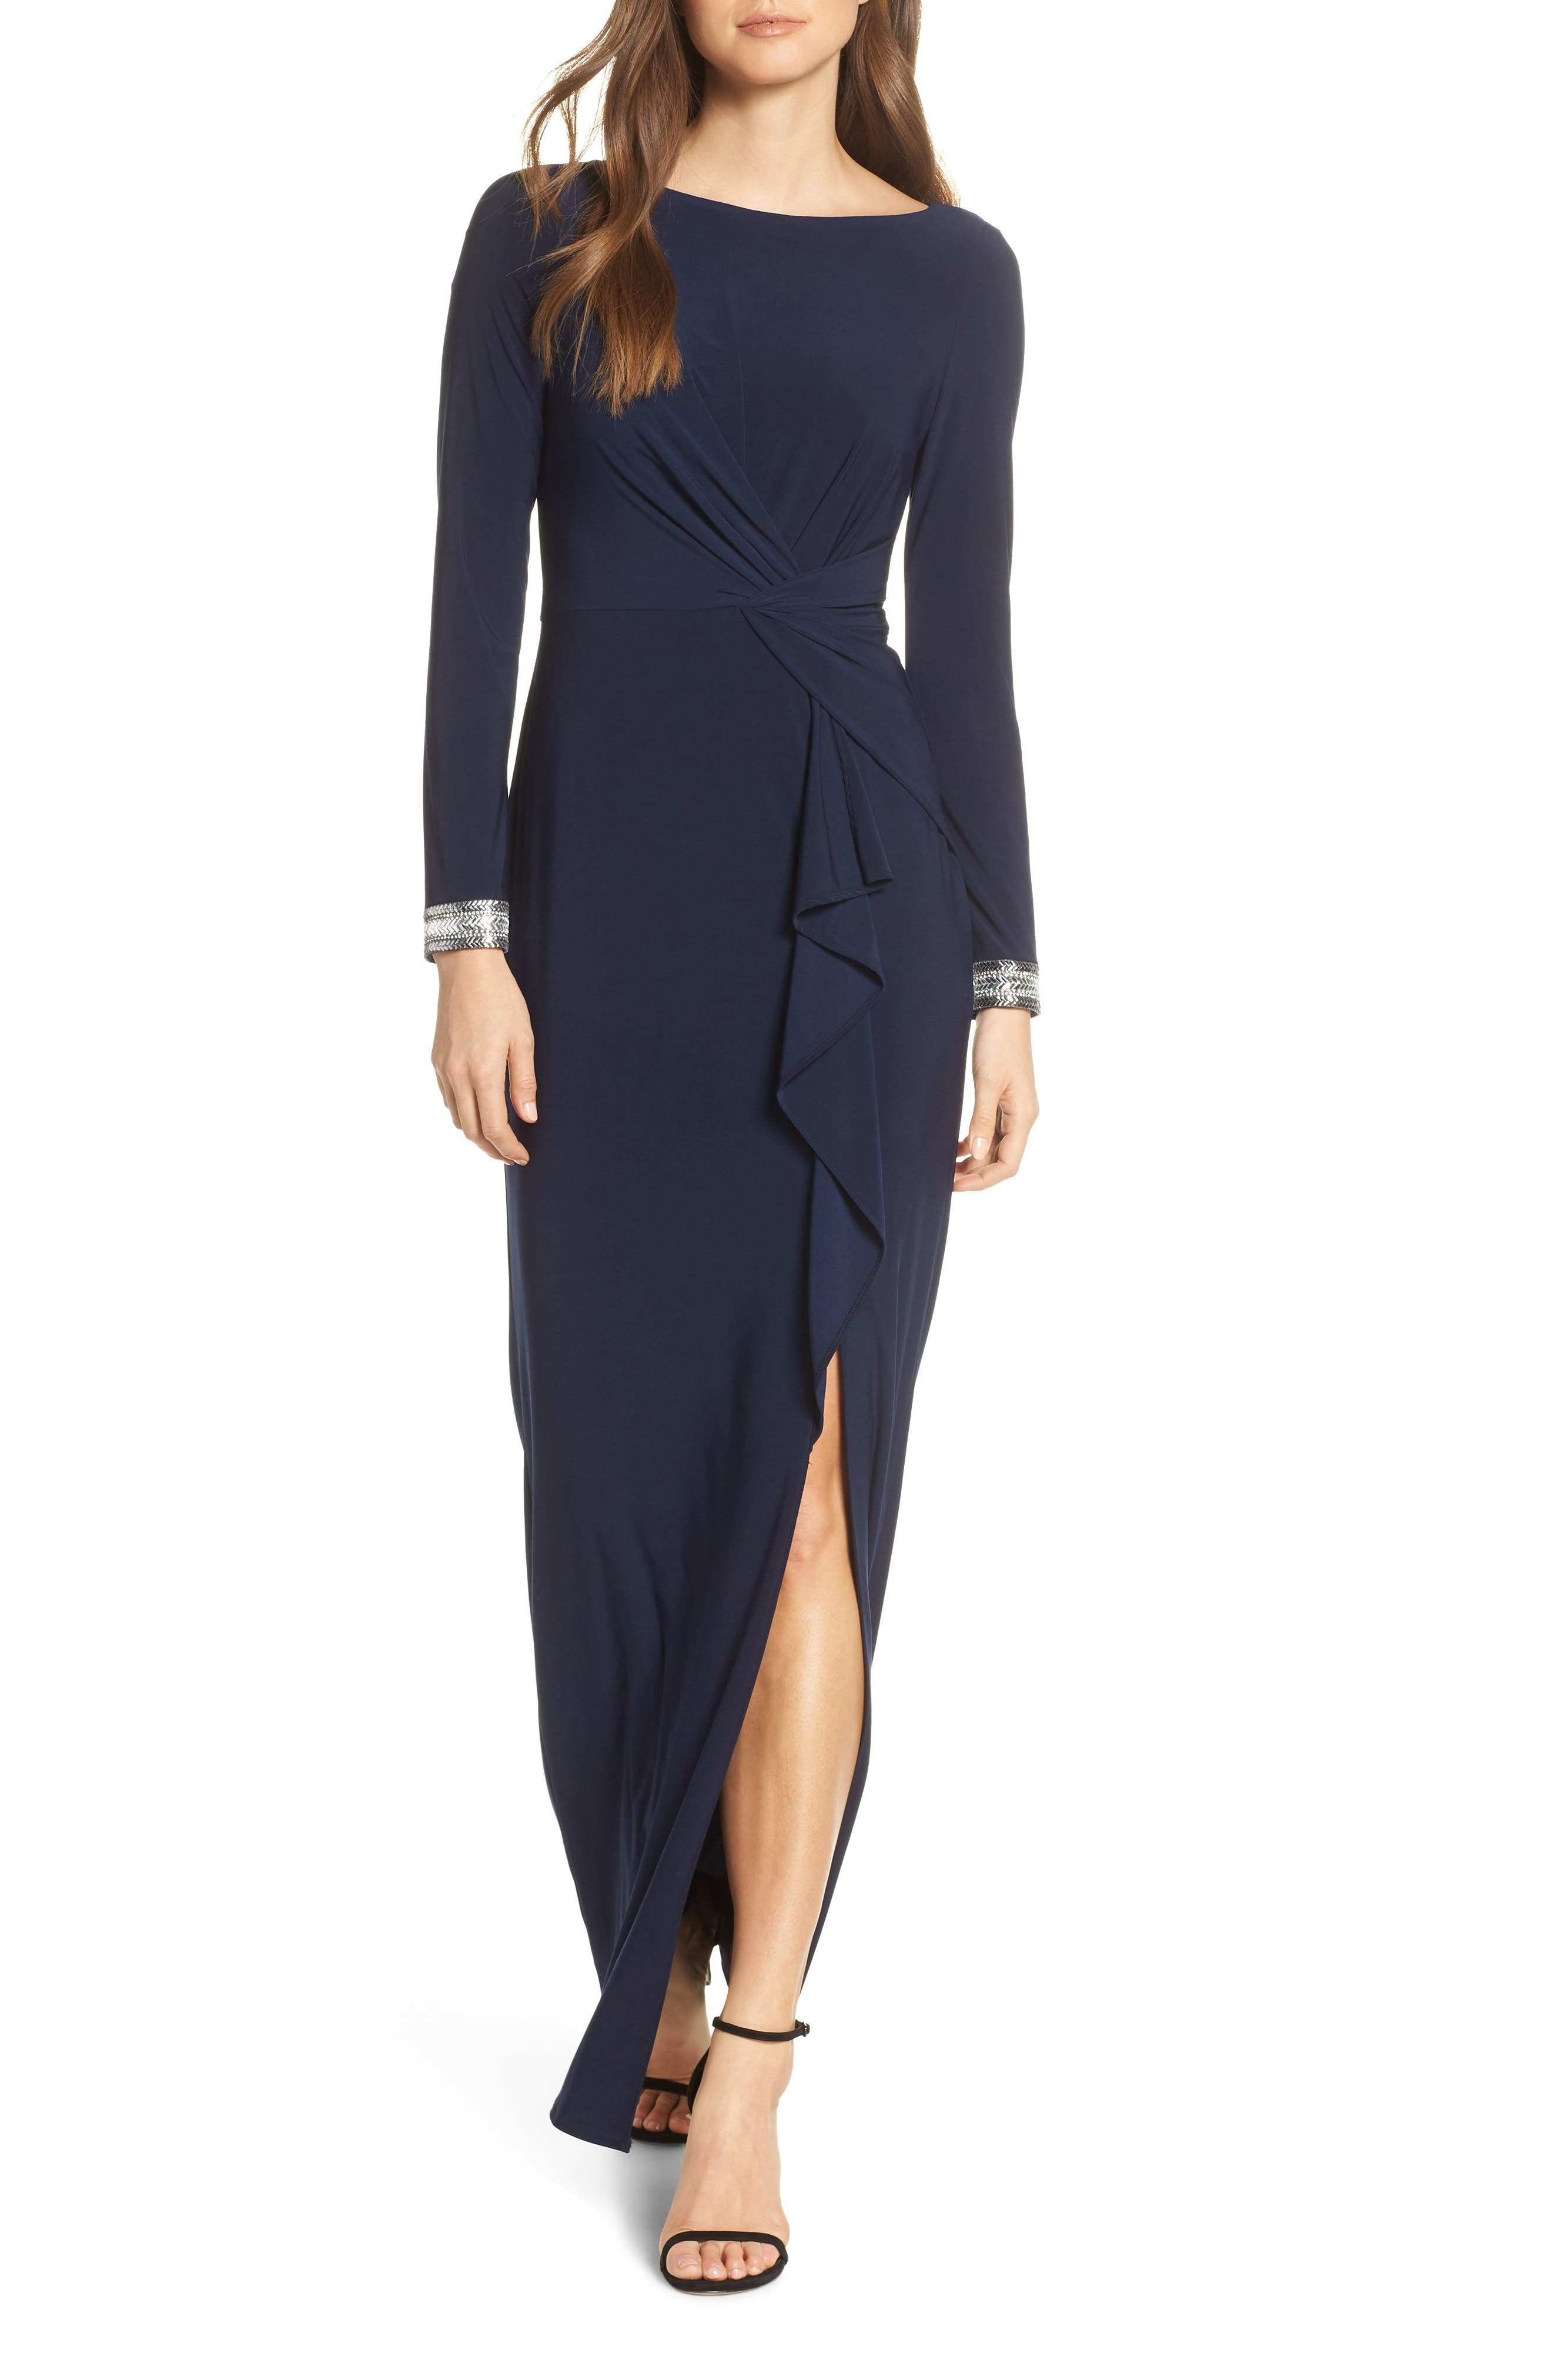 VINCE CAMUTO Beaded Cuff Ruched Jersey Dress, Main, color, NAVY